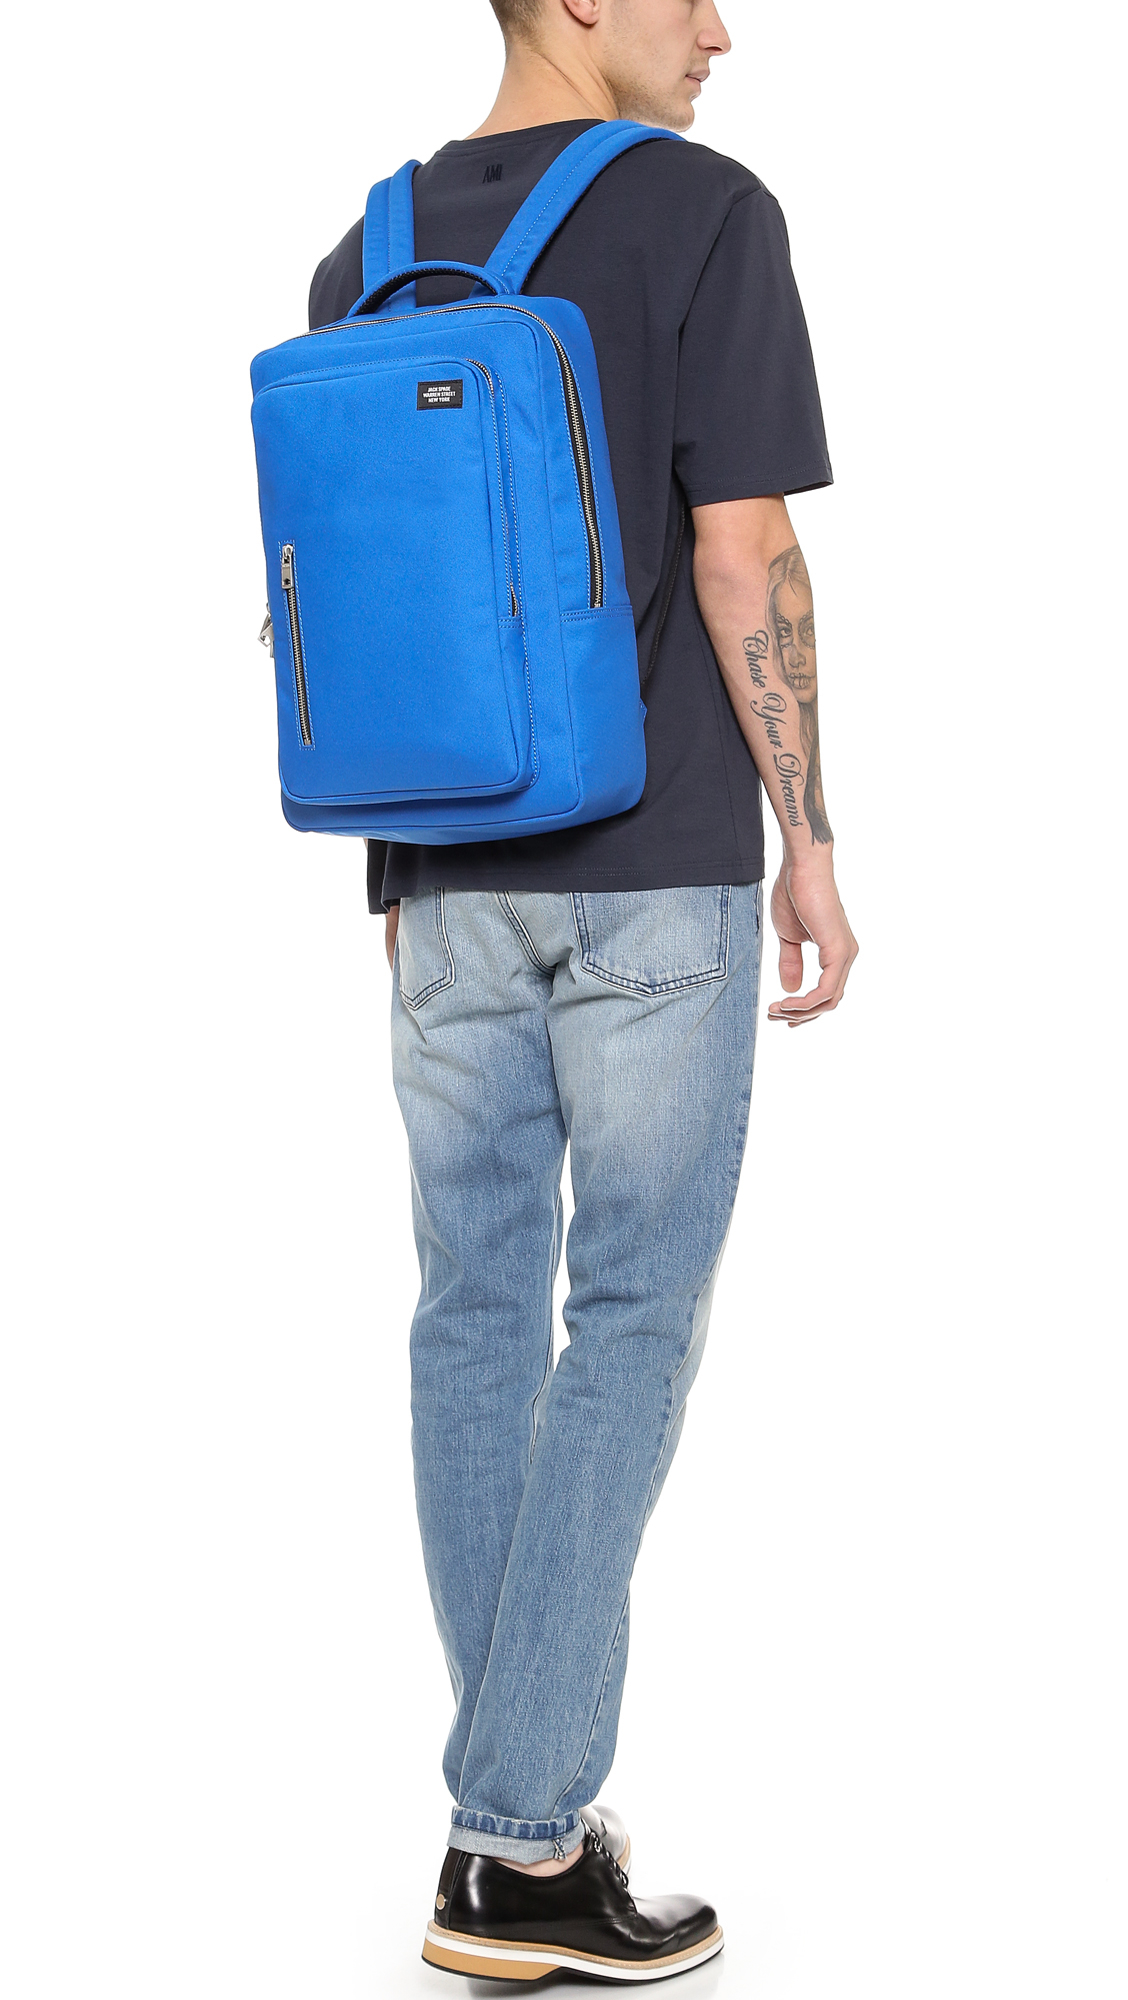 d6af998a4d29 Jack Spade Commuter Nylon Cargo Backpack in Blue for Men - Lyst